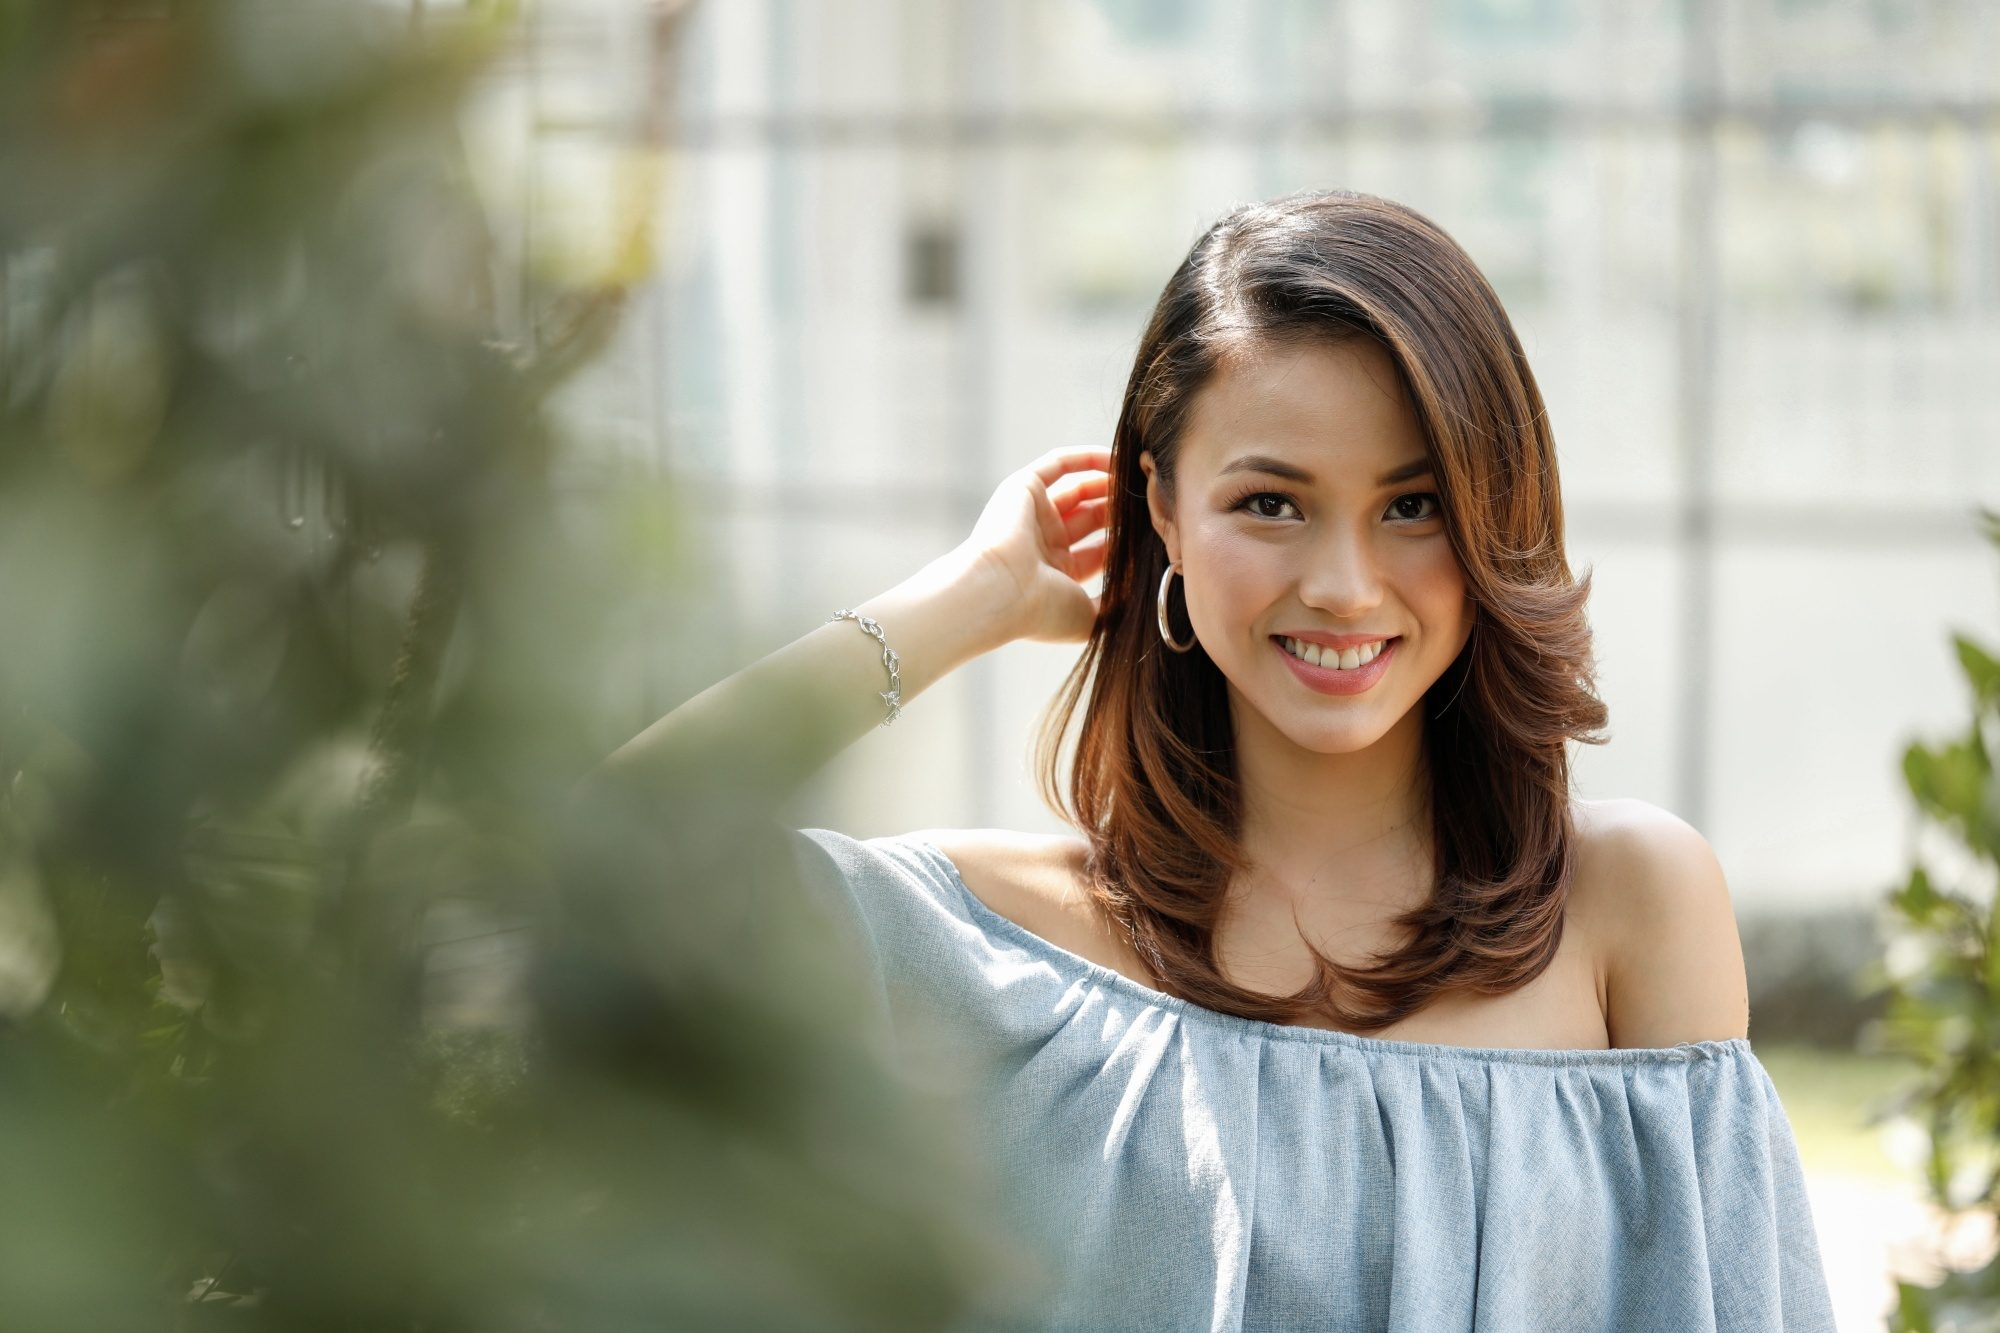 Asian woman with balayage brown hair wearing a blue off-shoulder top